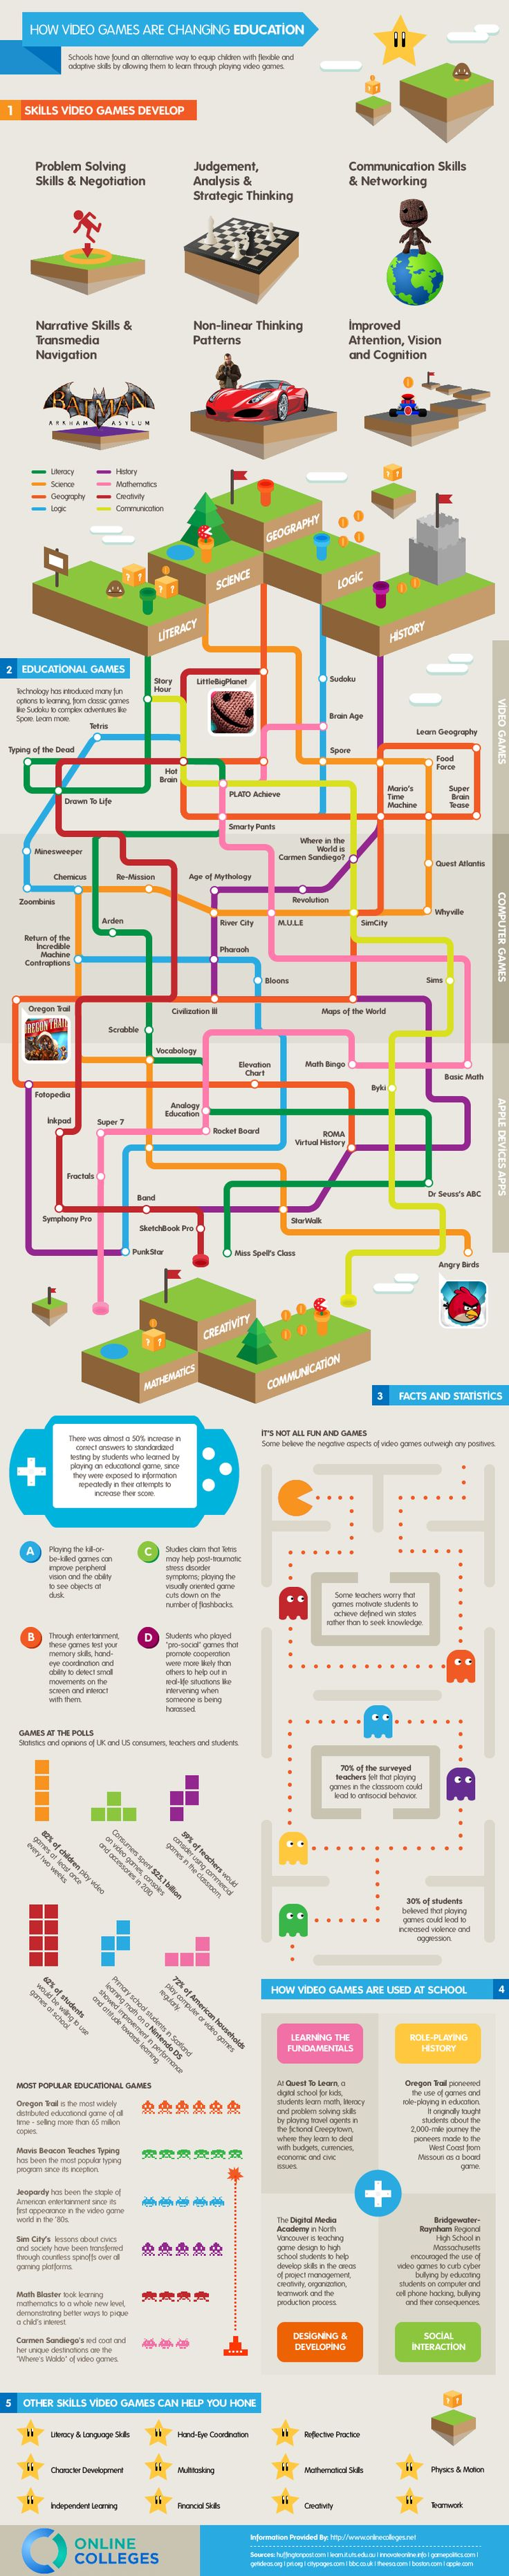 Video Games and Education | #infographics repinned by @Piktochart